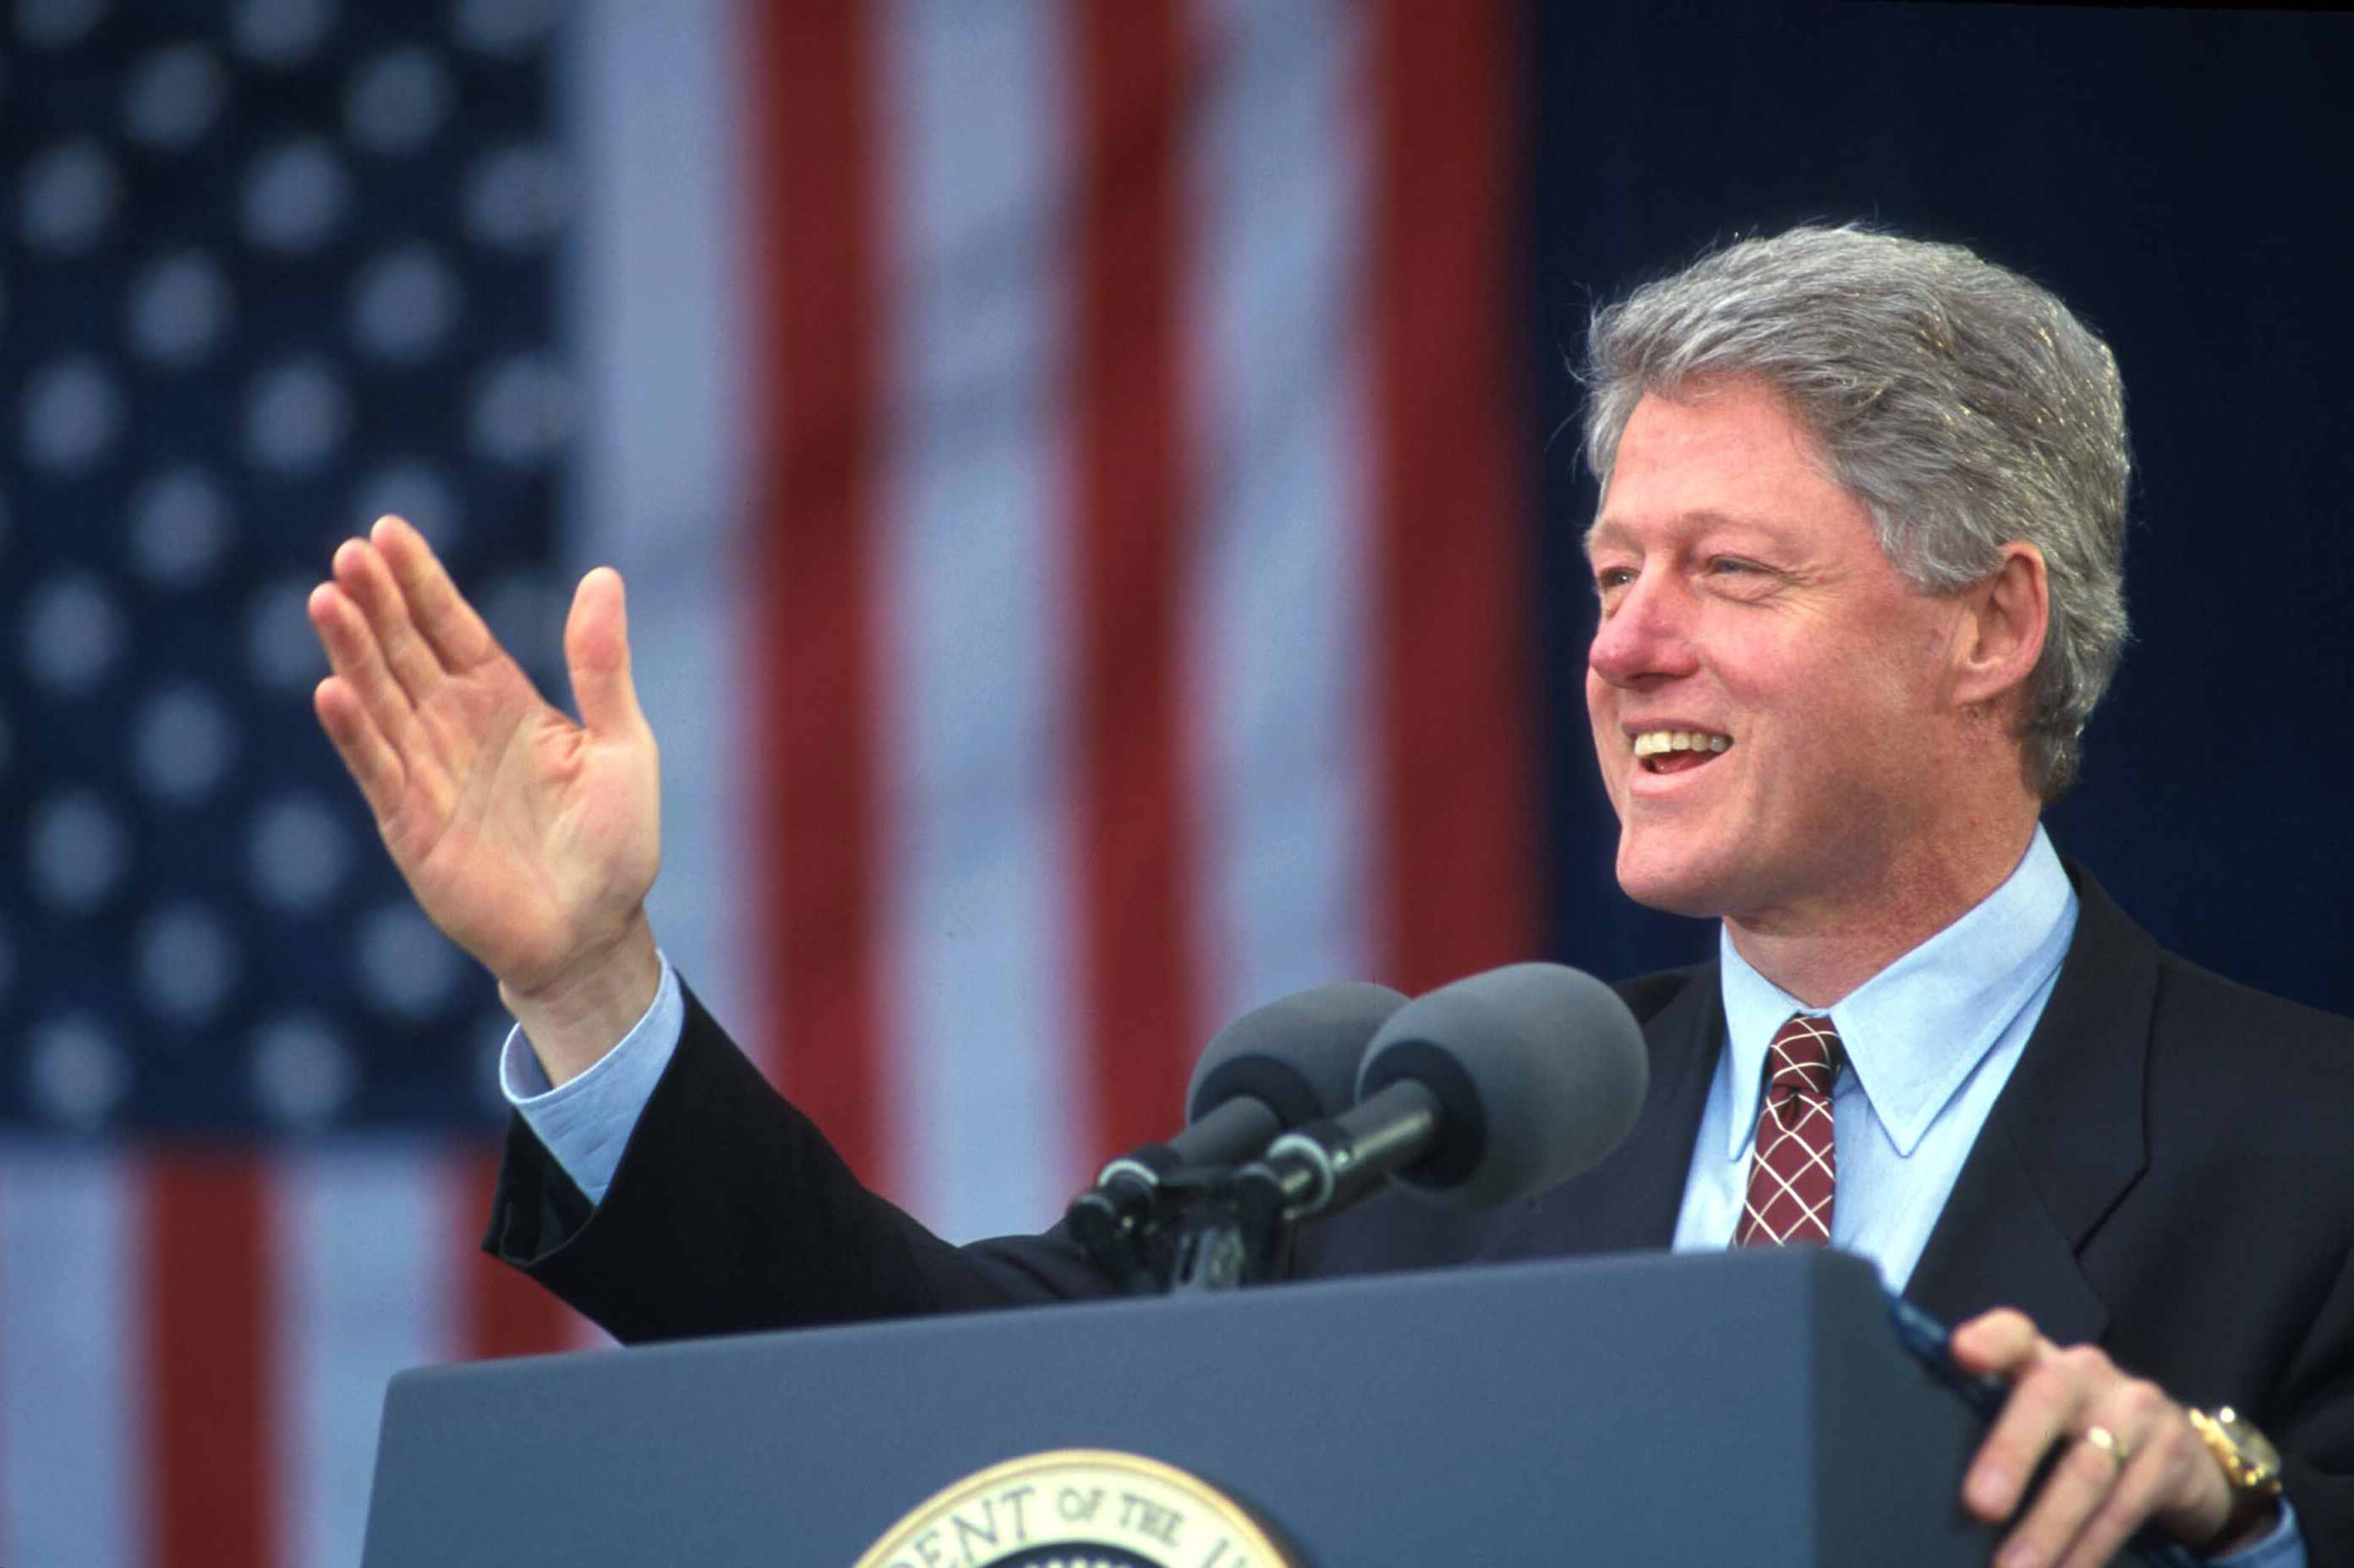 President Bill Clinton giving a speech in front of an American flag, 1995